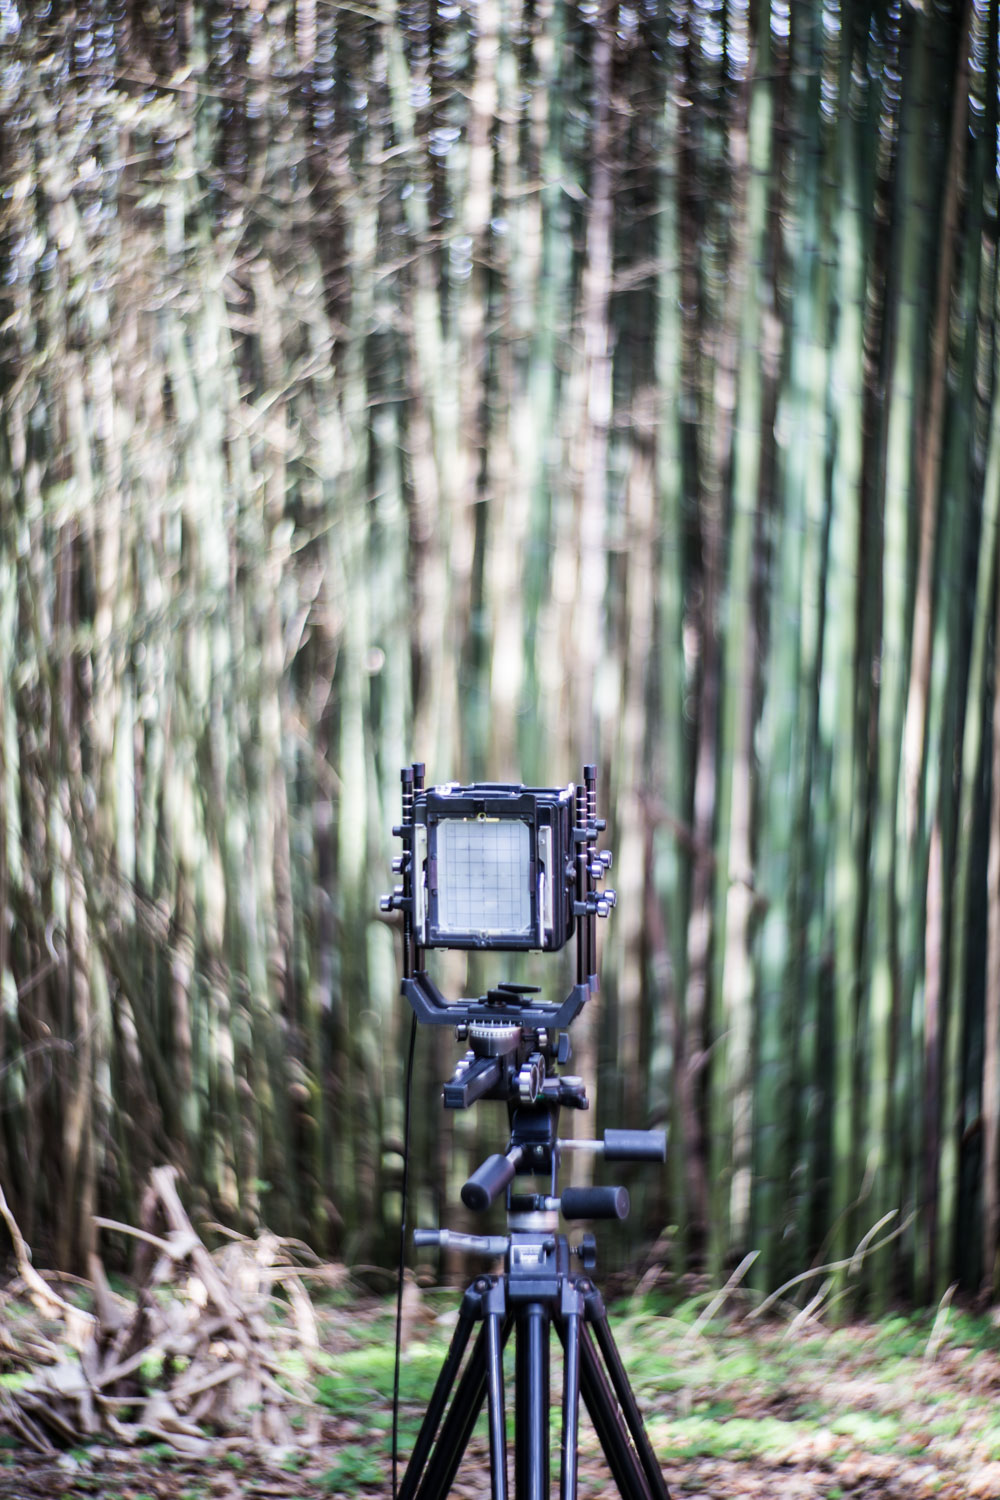 Zack's 4x5 film camera poises patiently at poet Darrell Bourque's bamboo backyard This project was helped by a grant from the New Orleans Jazz and Heritage Foundation Community Partnership Grant